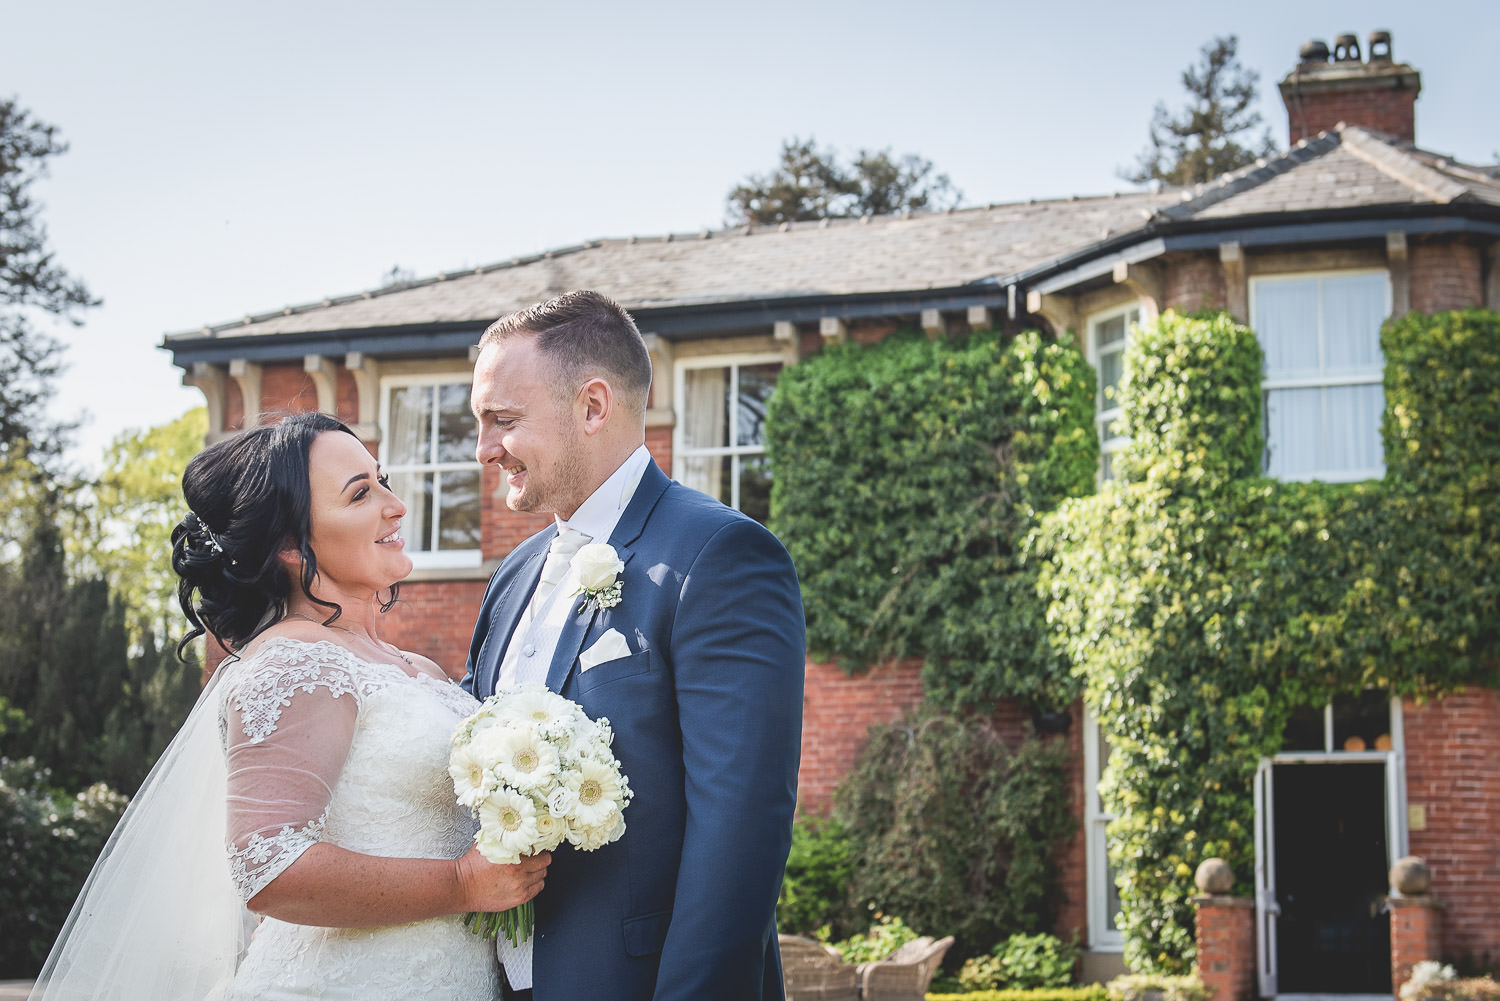 Bartle Hall Wedding Photography | Kirsty & James